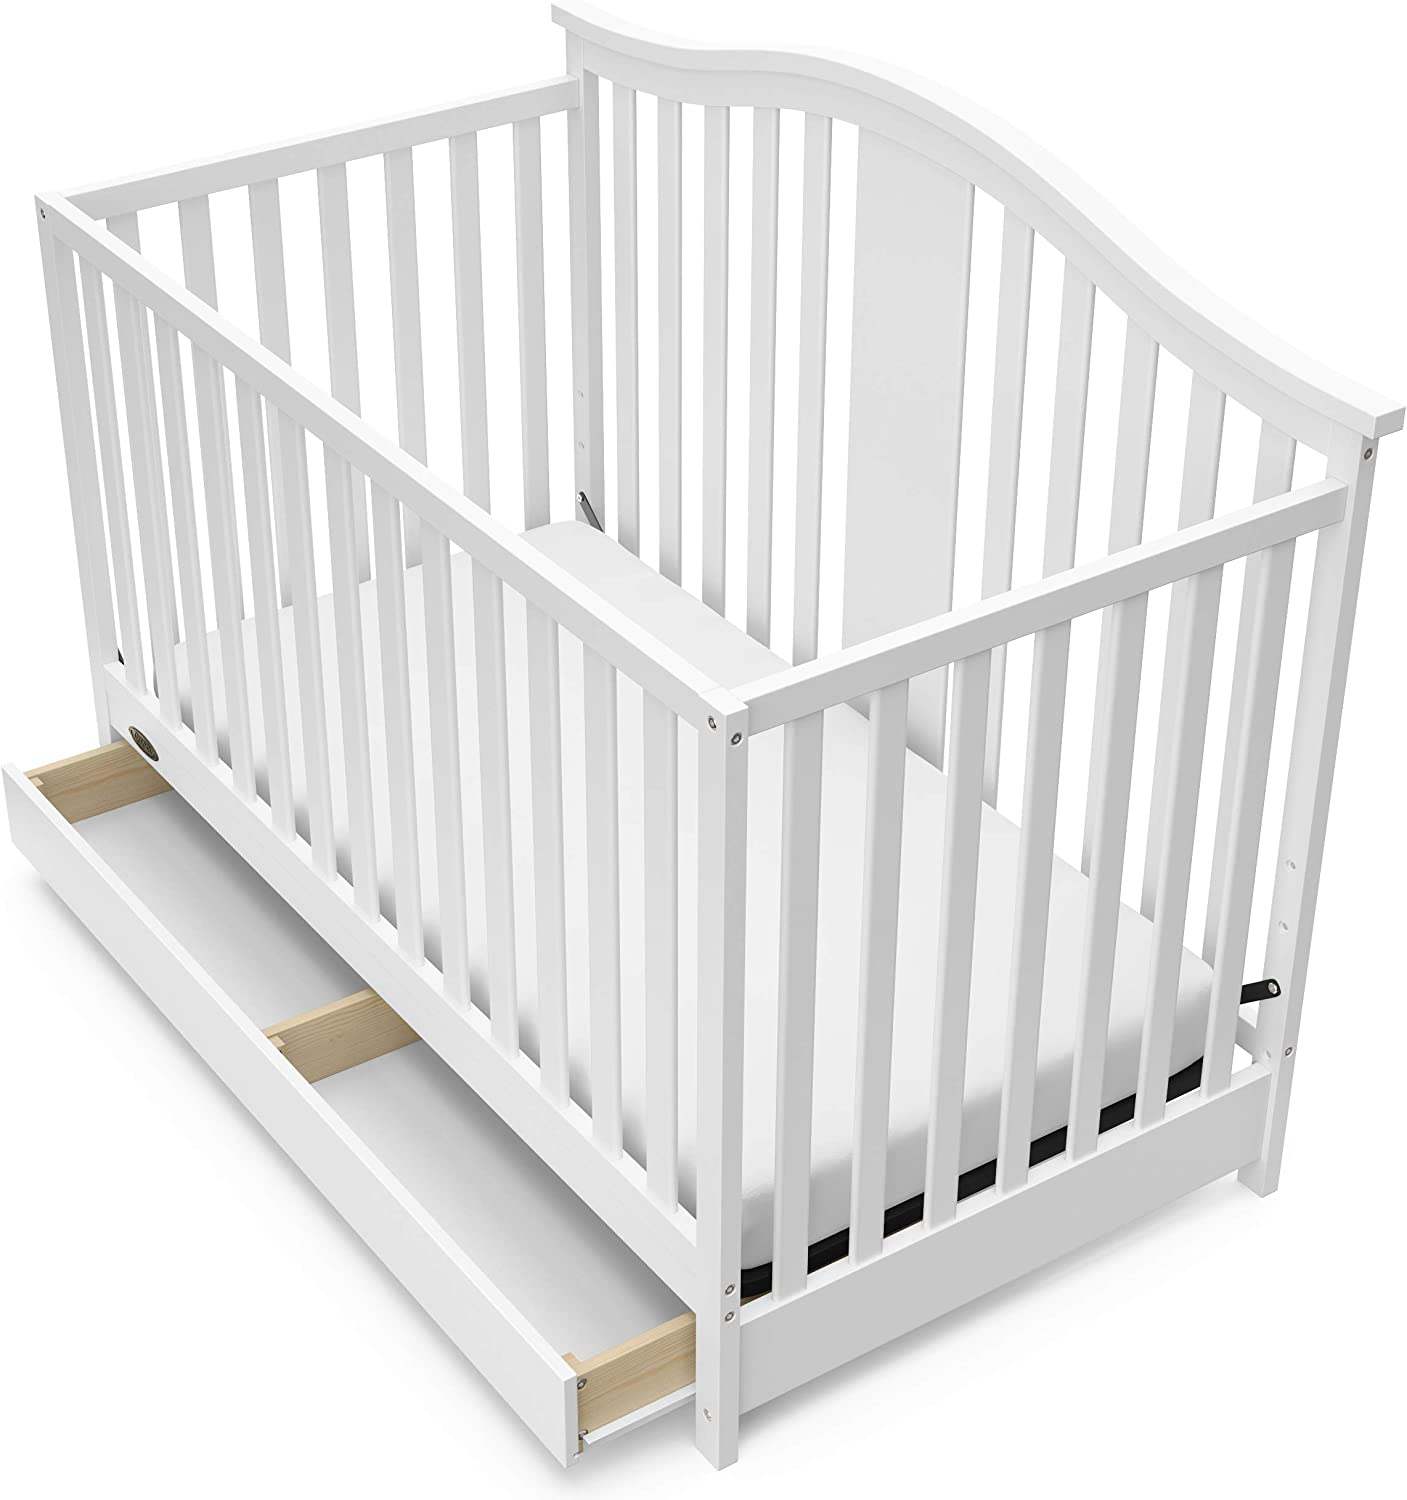 Multipurpose Storkcraft Graco Solano 4-in-1 Convertible Crib with Drawer